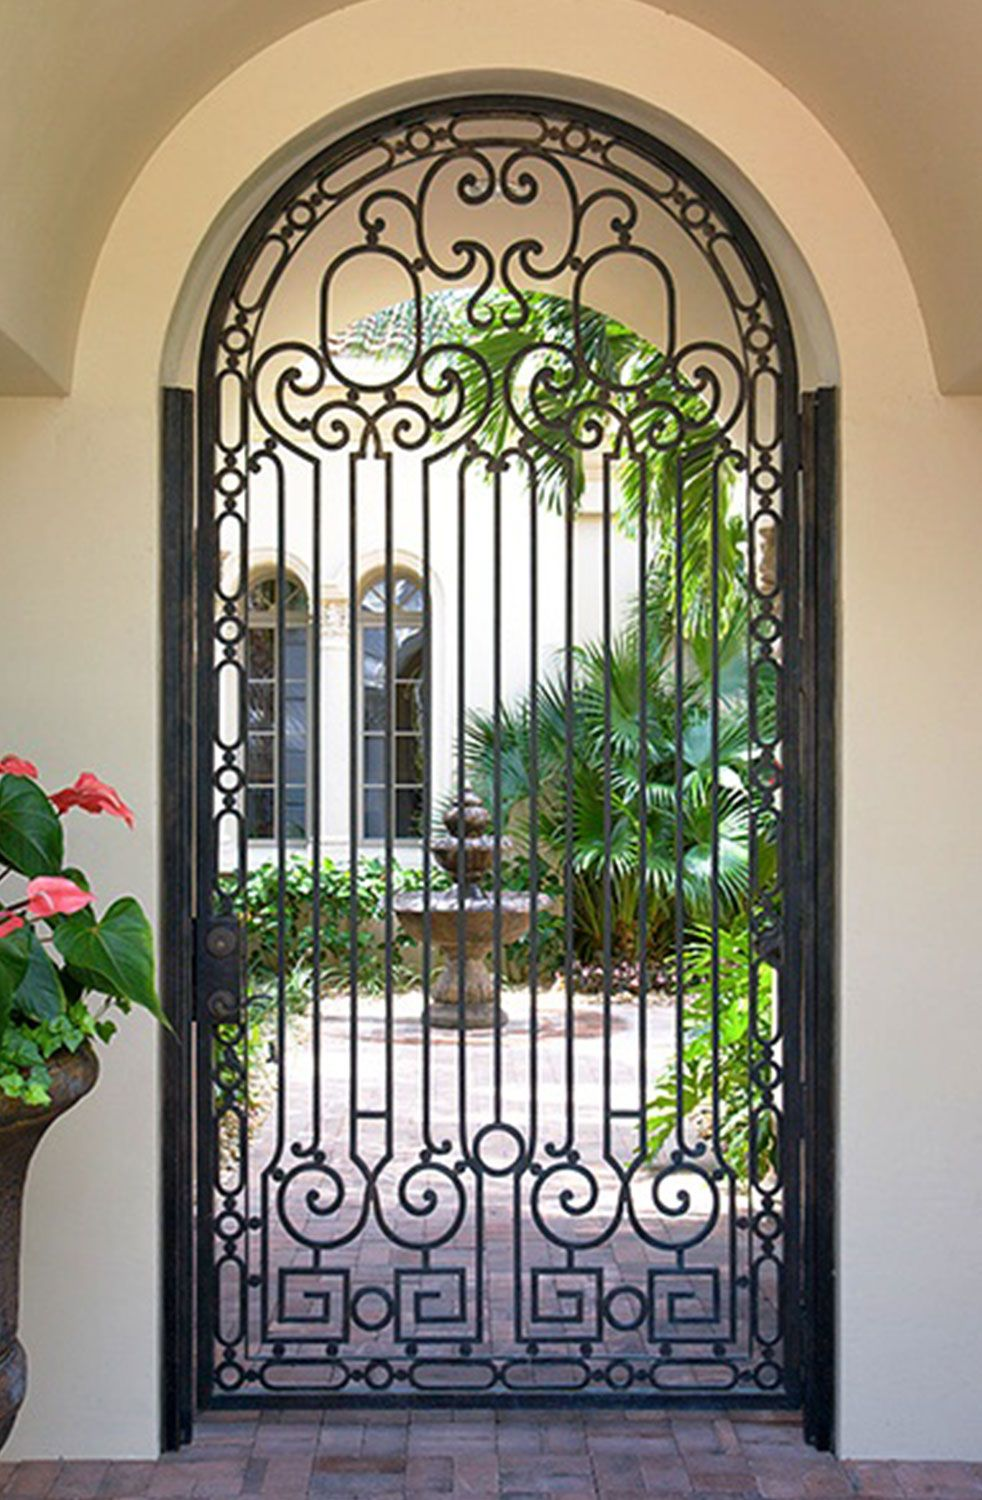 Cantera Doors Provides Hand Forged Custom Made Iron Staircase Balcony Railings For Your Home In Texas Flo Wrought Iron Doors Iron Doors Wrought Iron Gates